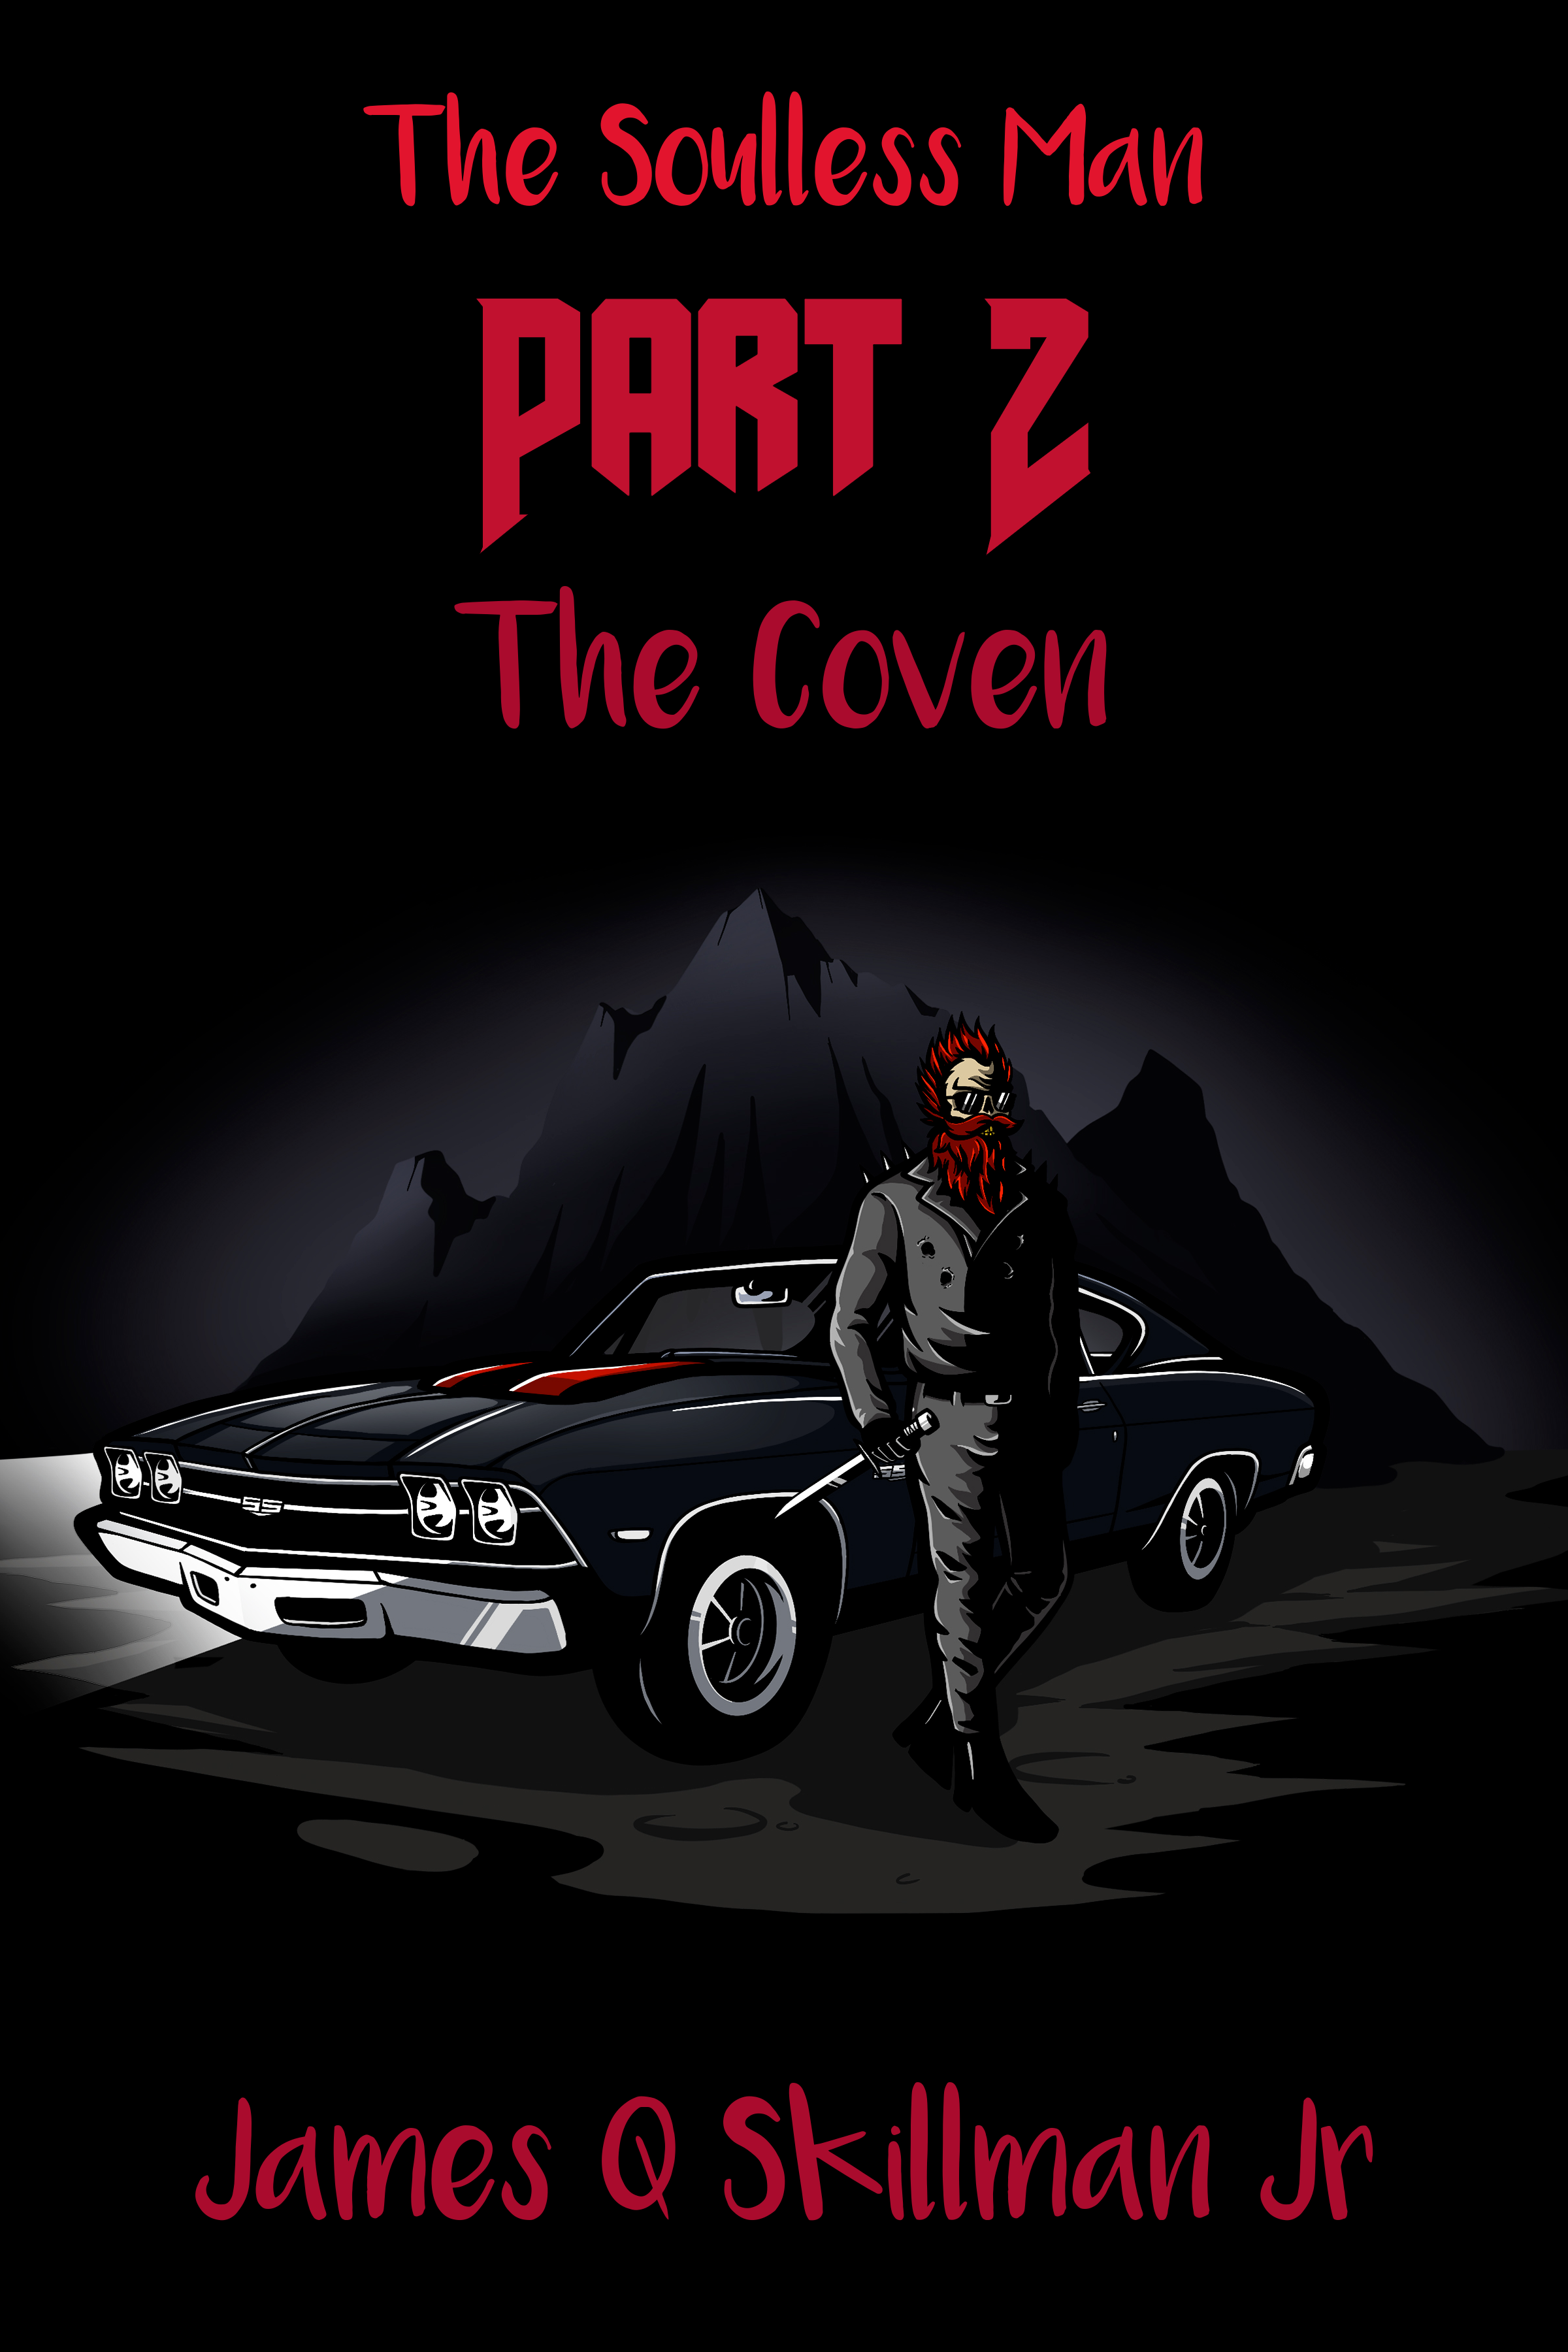 The Soulless Man part 2 The coven's Book Image